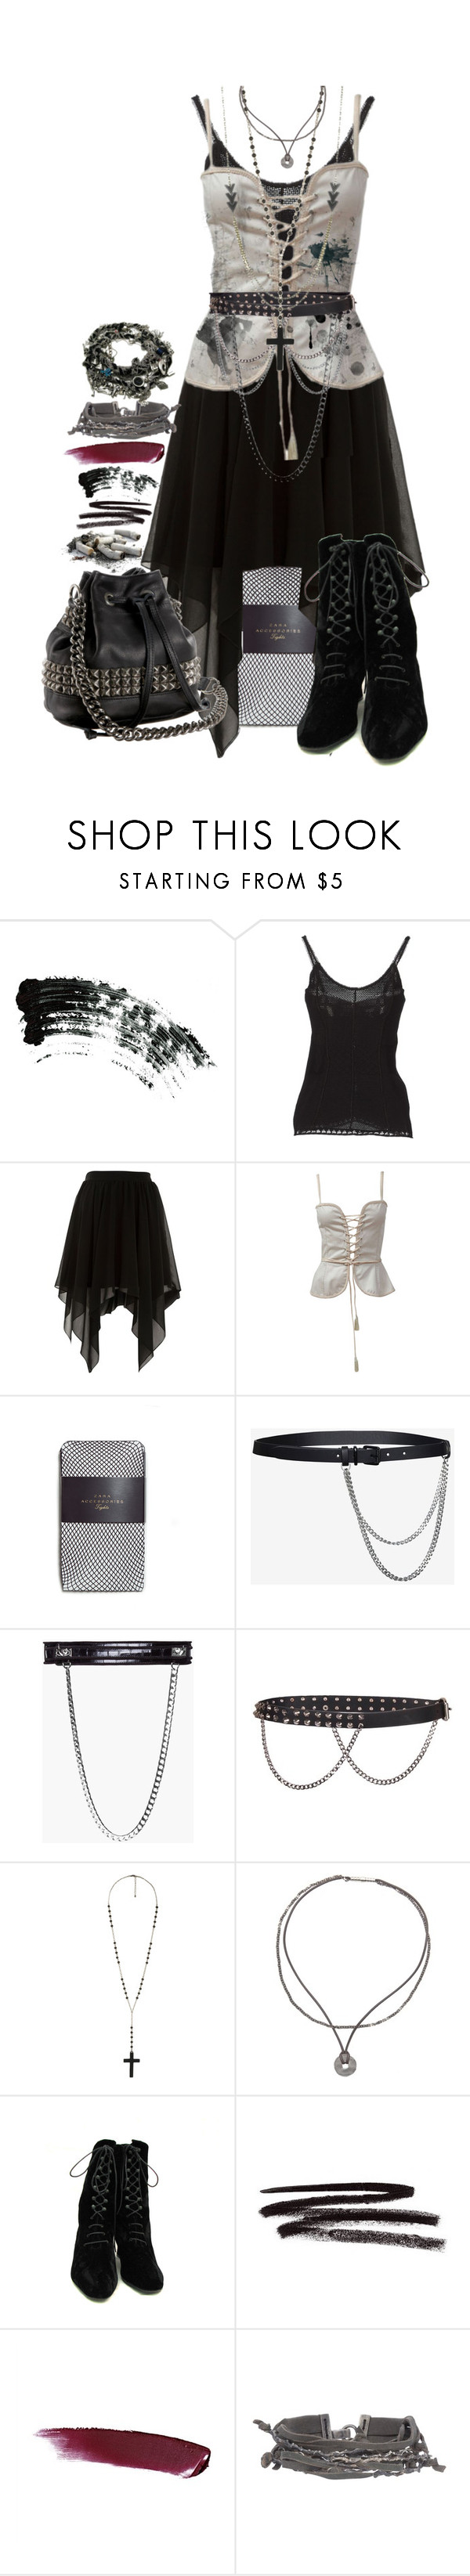 """someone take these dreams away ..."" by no0ne ❤ liked on Polyvore featuring Sue Devitt, KUXO, Yves Saint Laurent, Zara, Barbara Bui, Givenchy, Forever 21, Bottega Veneta, Tylie Malibu and Christian Dior"